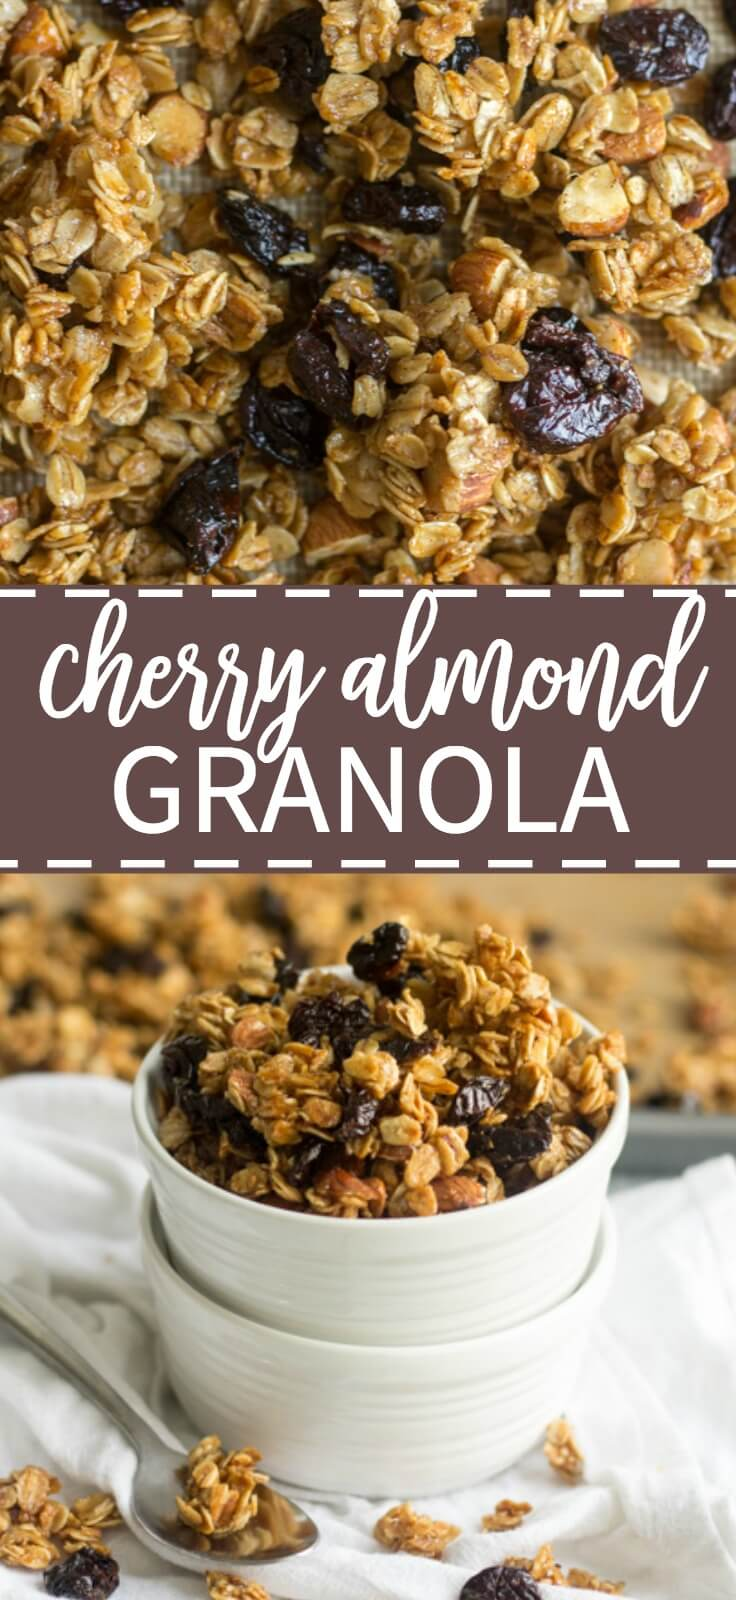 Crunchy, sticky and sweet, this homemade cherry almond granola is made in one bowl and has so much flavor. Sweetened with mostly maple syrup, this healthy breakfast or snack recipe is so easy to make. Mix all 8 ingredients in a bowl and spread it on the pan and bake for 45 mins.